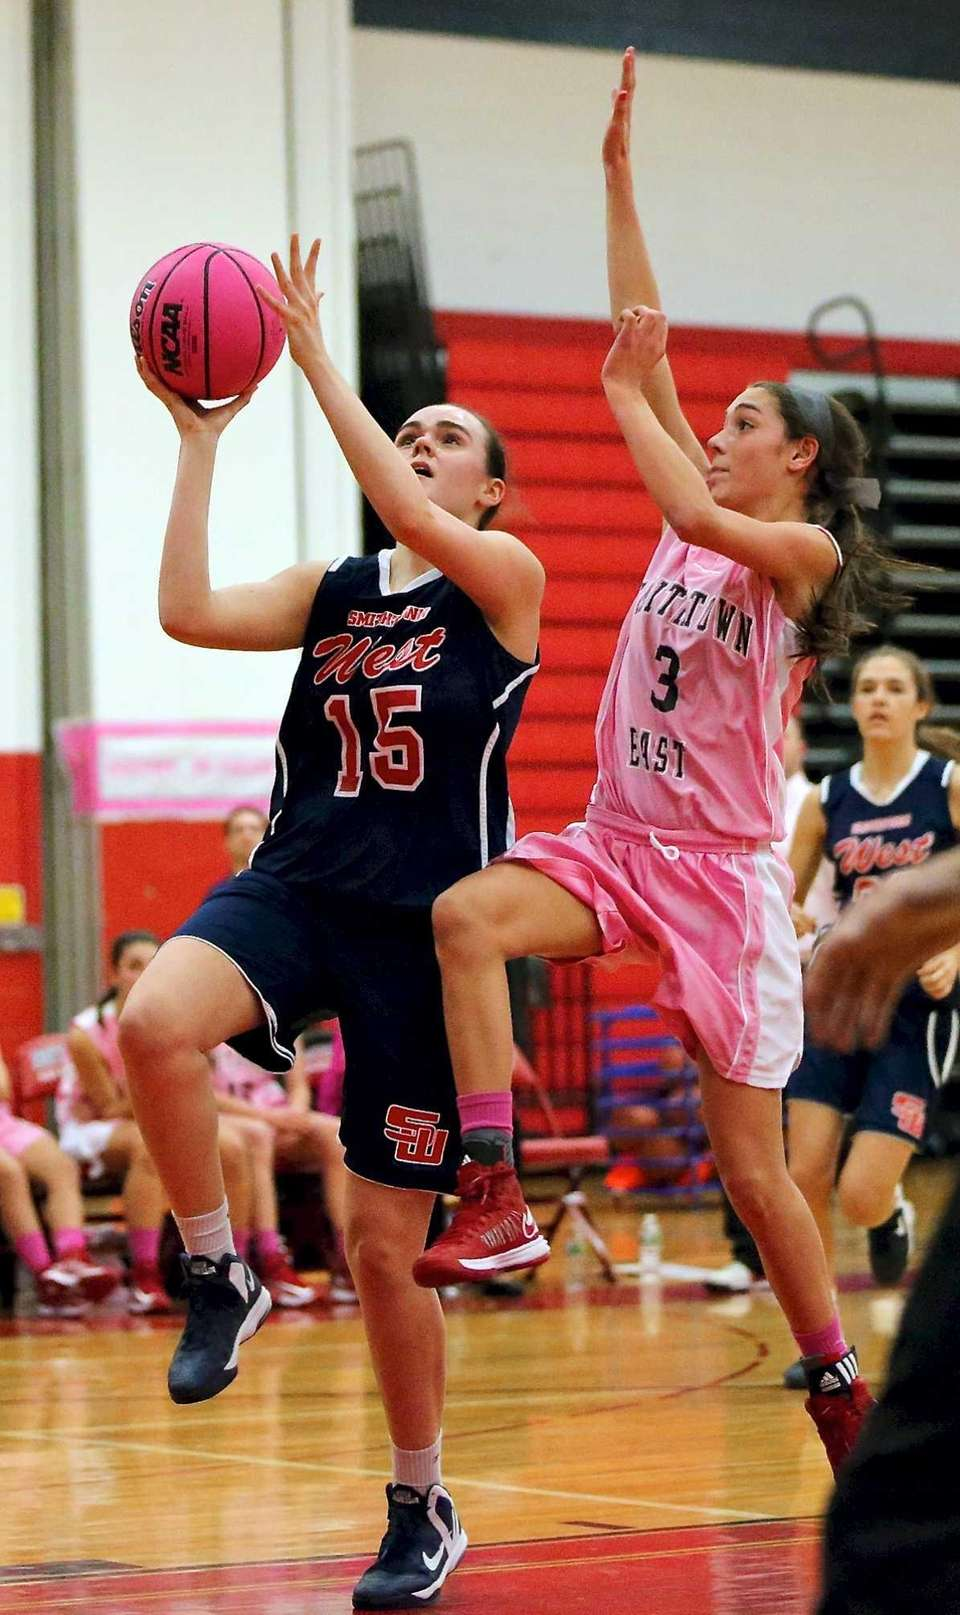 Smithtown West's Katherine Delanty takes the steal in